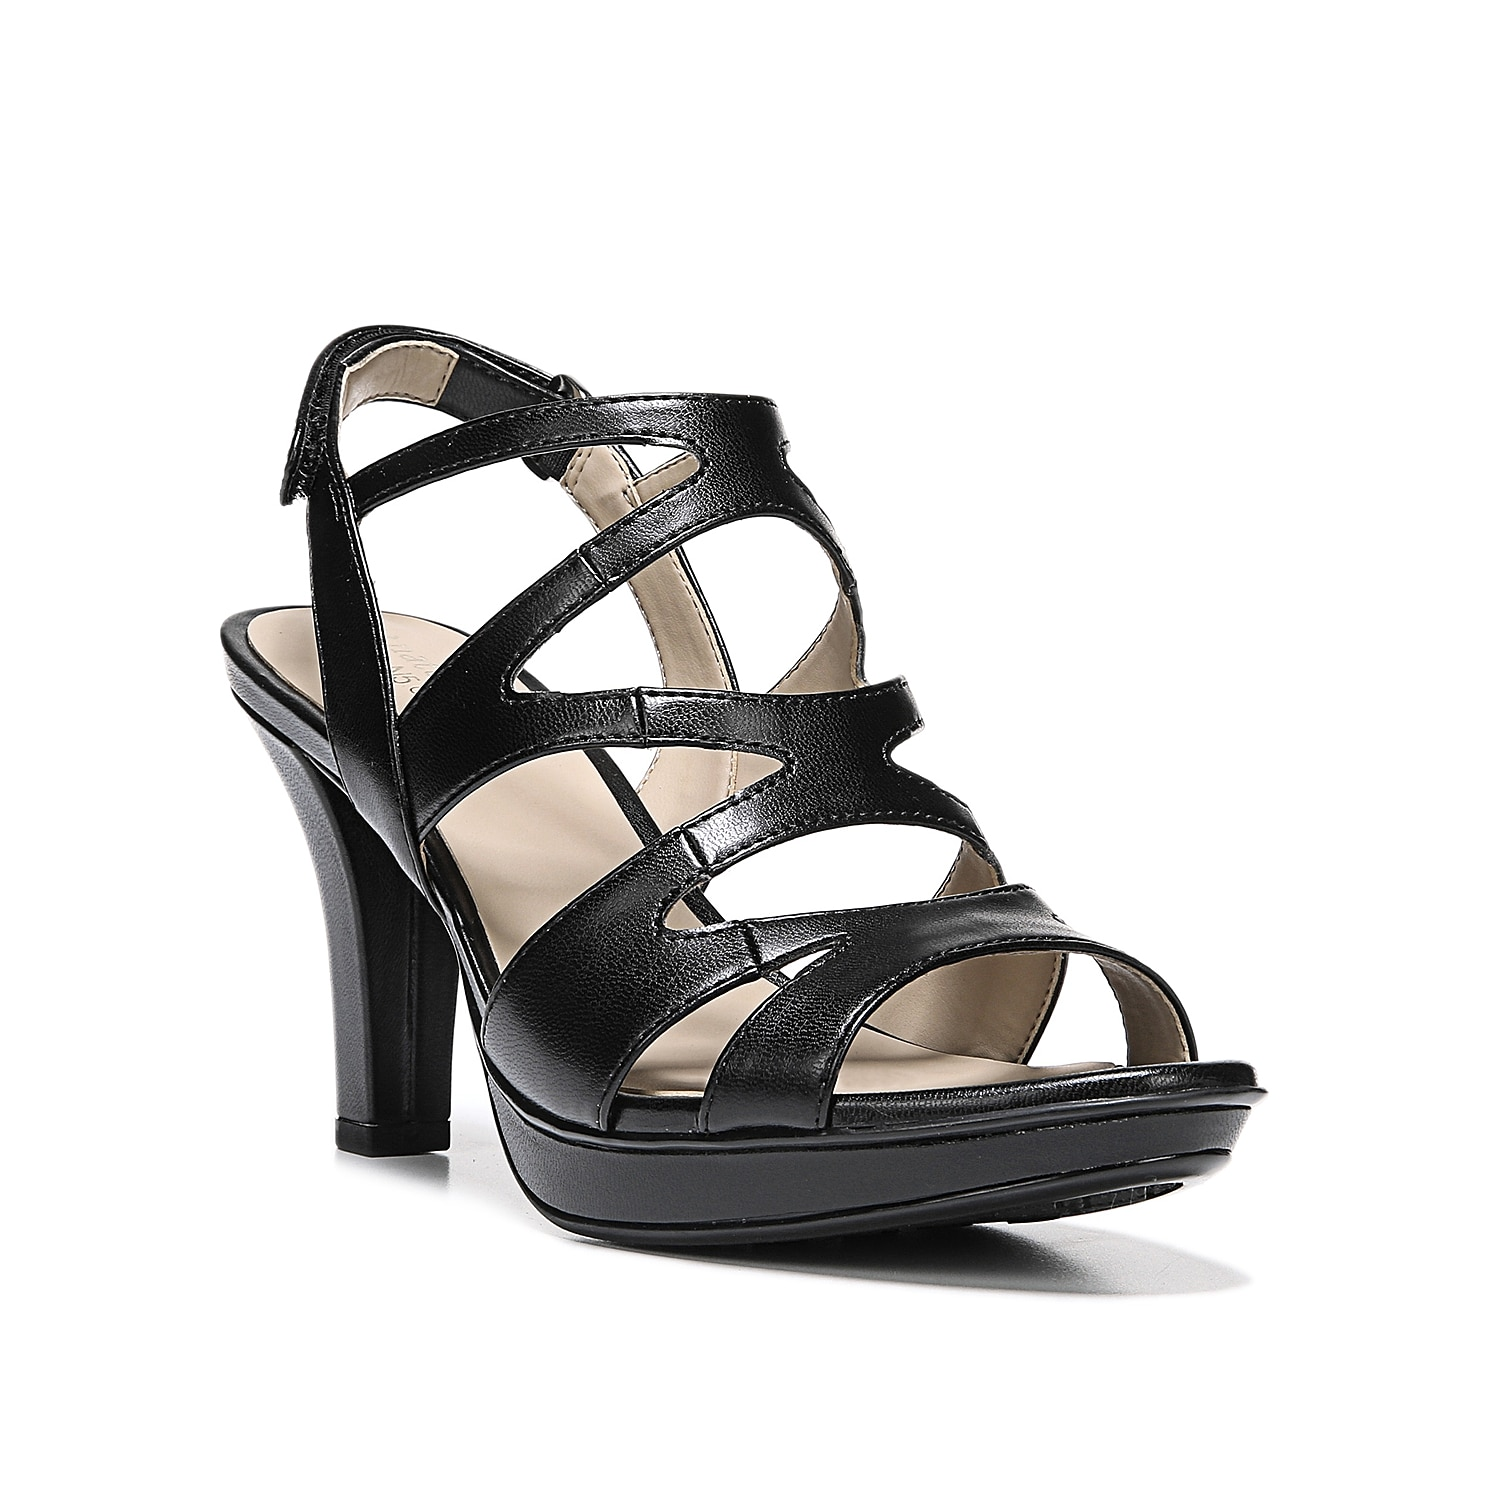 Mix things up with the Dianna sandal from Naturalizer. With strappy styling and a block heel, this platform sandal is sure to be a hit!